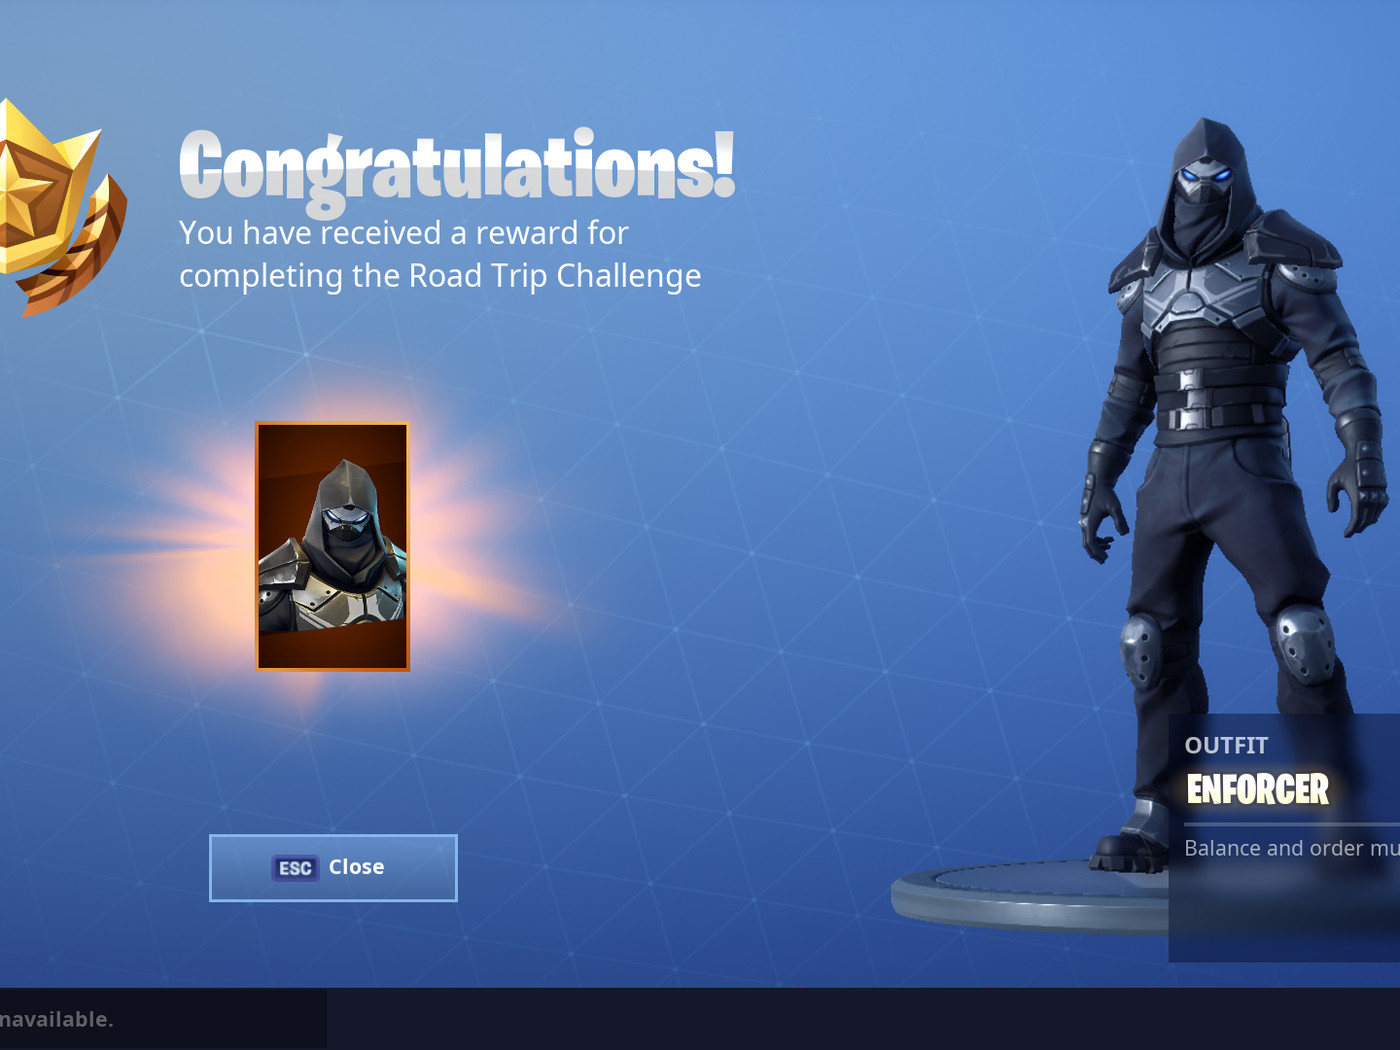 fortnite s road trip challenge skin has been revealed as the enforcer polygon fortnite s road trip challenge skin has